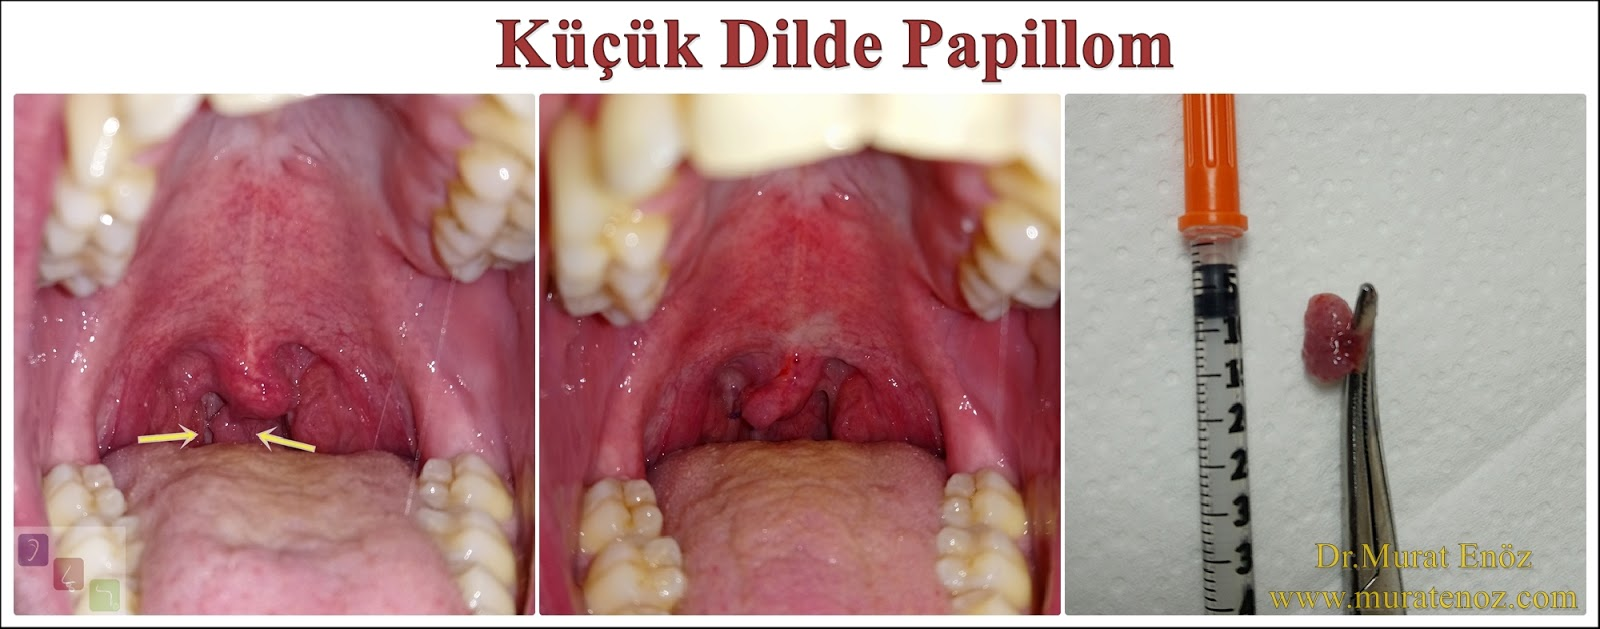 papilom gingival hepatic cancer fun facts